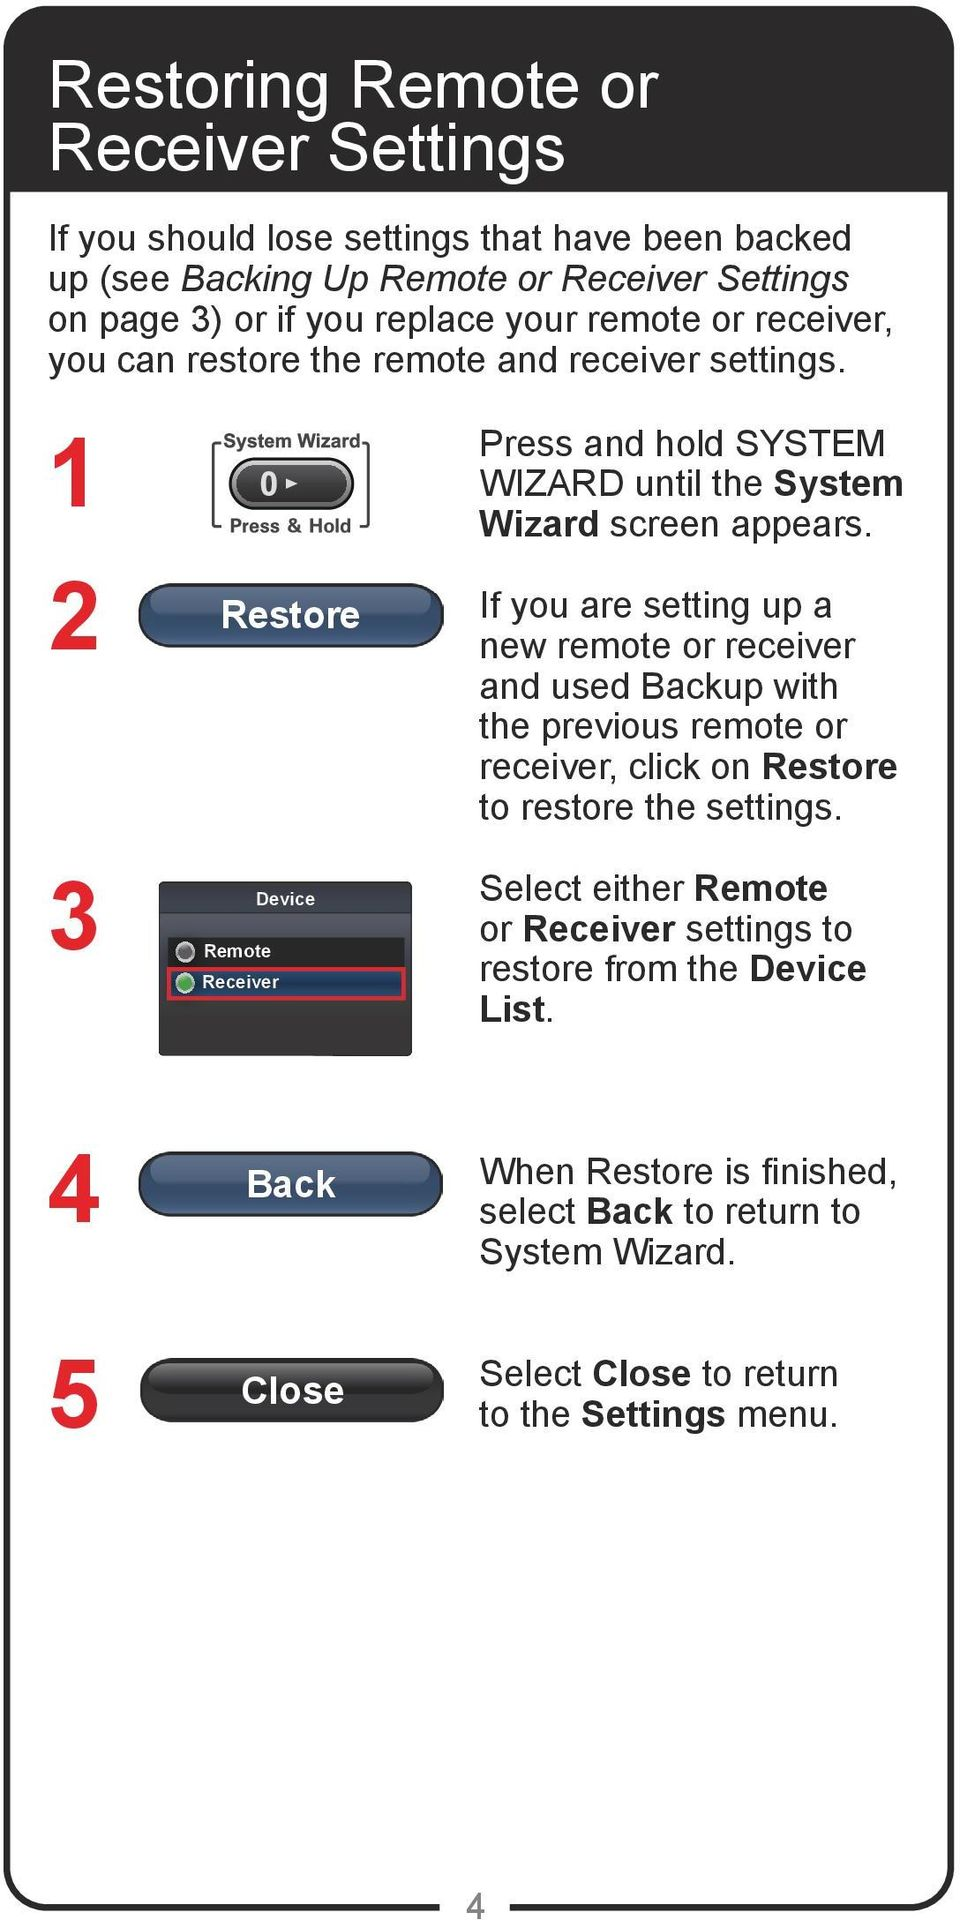 1 2 3 Restore Remote Receiver Device Press and hold SYSTEM WIZARD until the System Wizard screen appears.